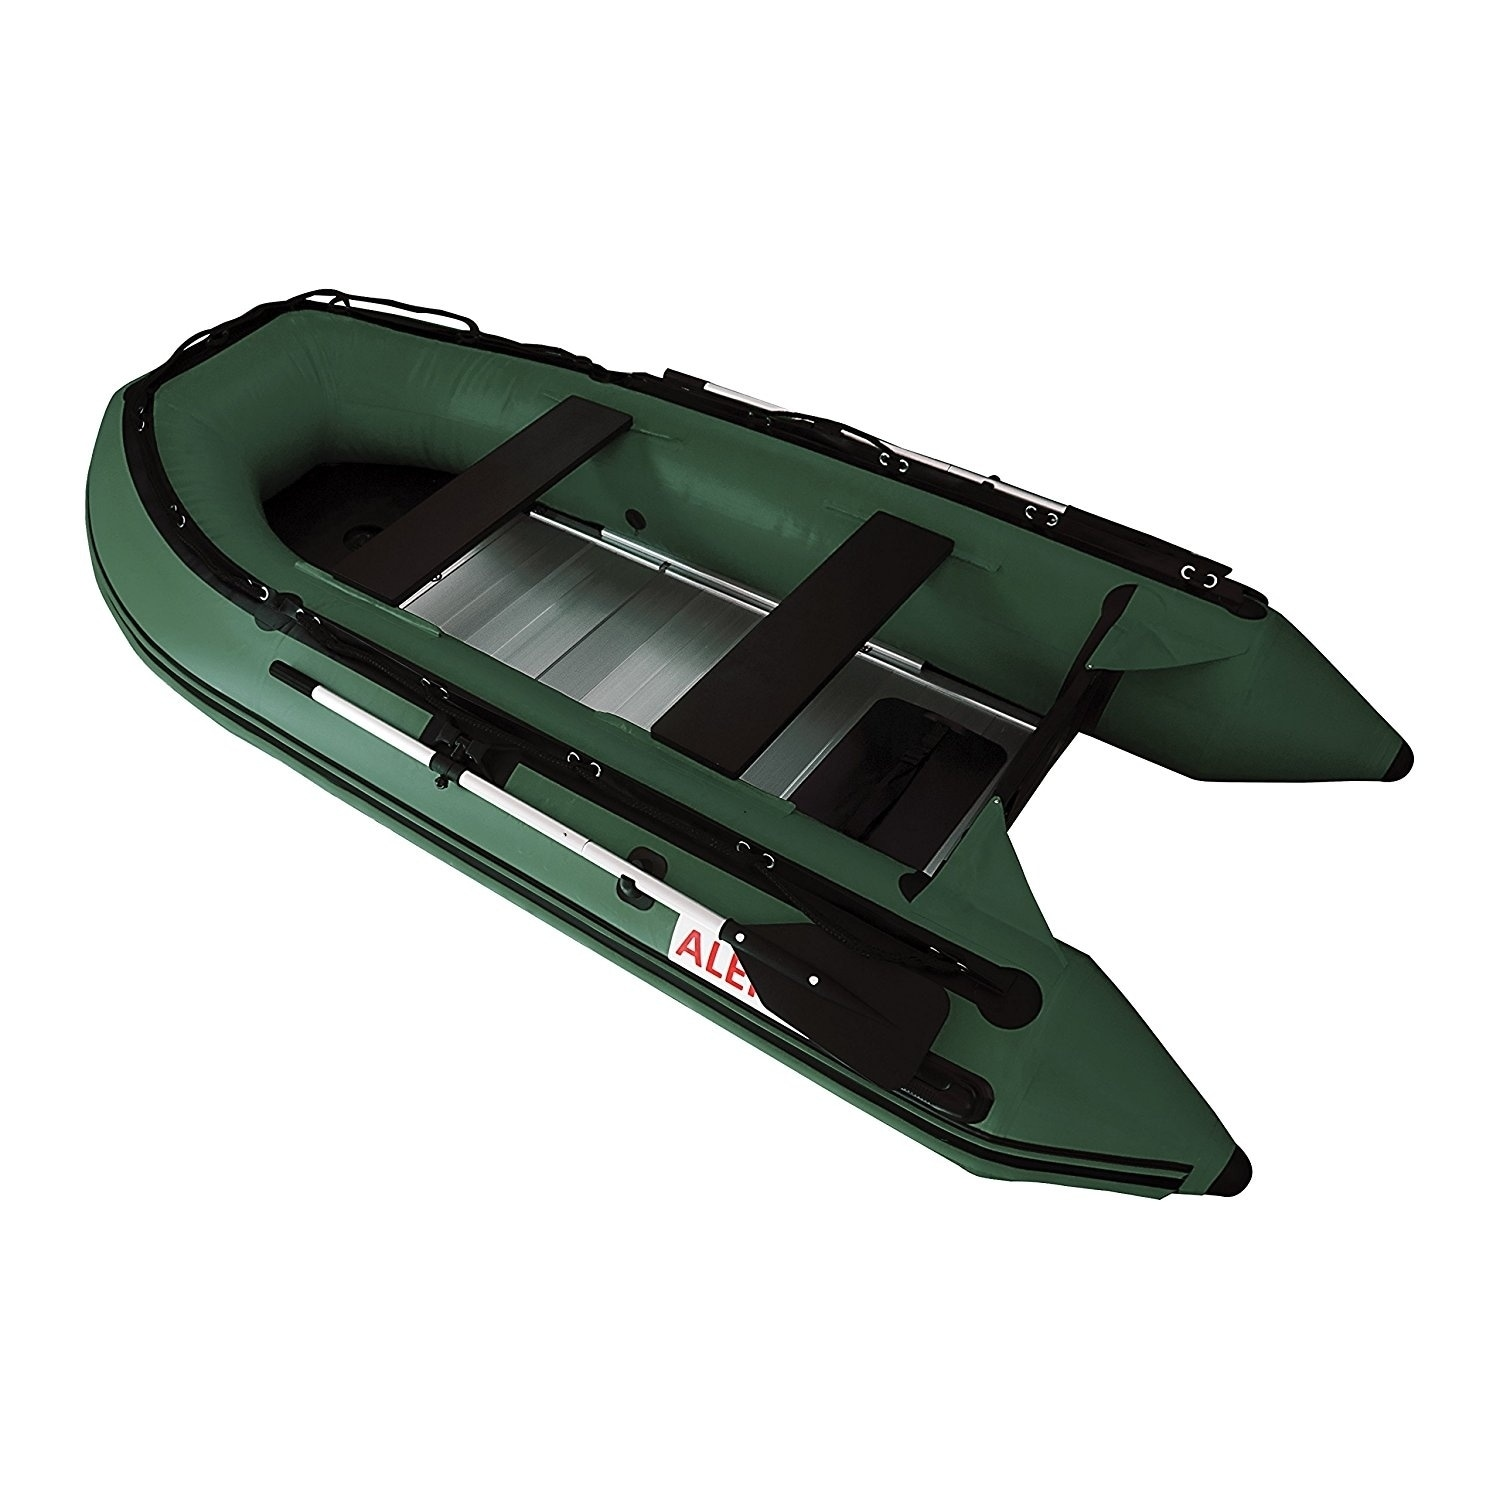 Aleko Inflatable 10.5' with Aluminum Floor 4 Person Raft ...